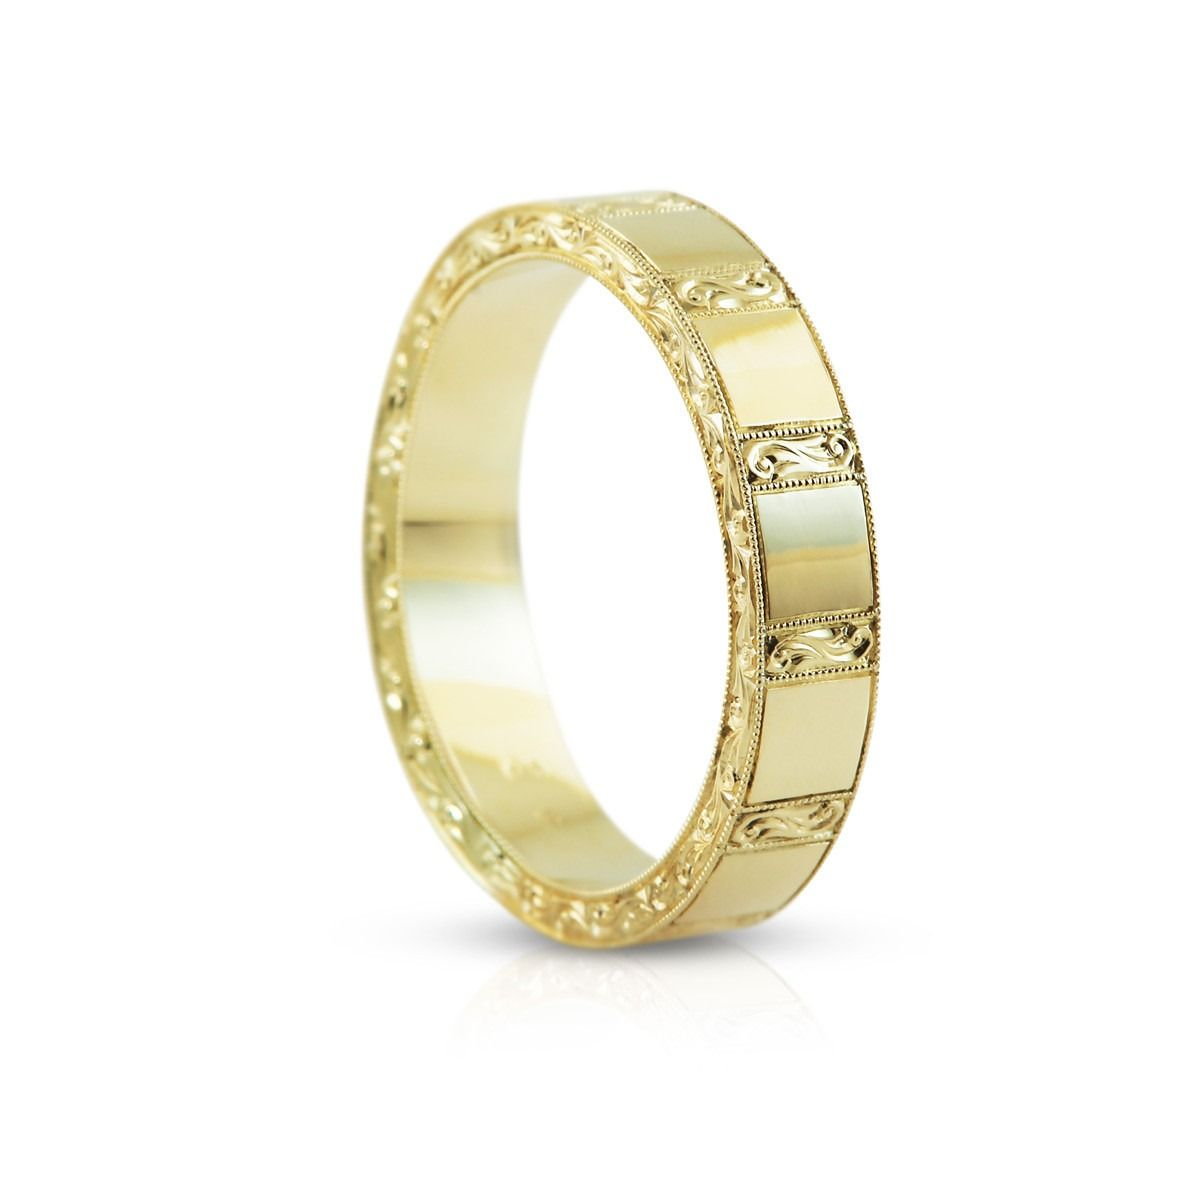 The Barocco Bold Men s Wedding Ring comes from Affianced Jewellery ... 879fcc557a